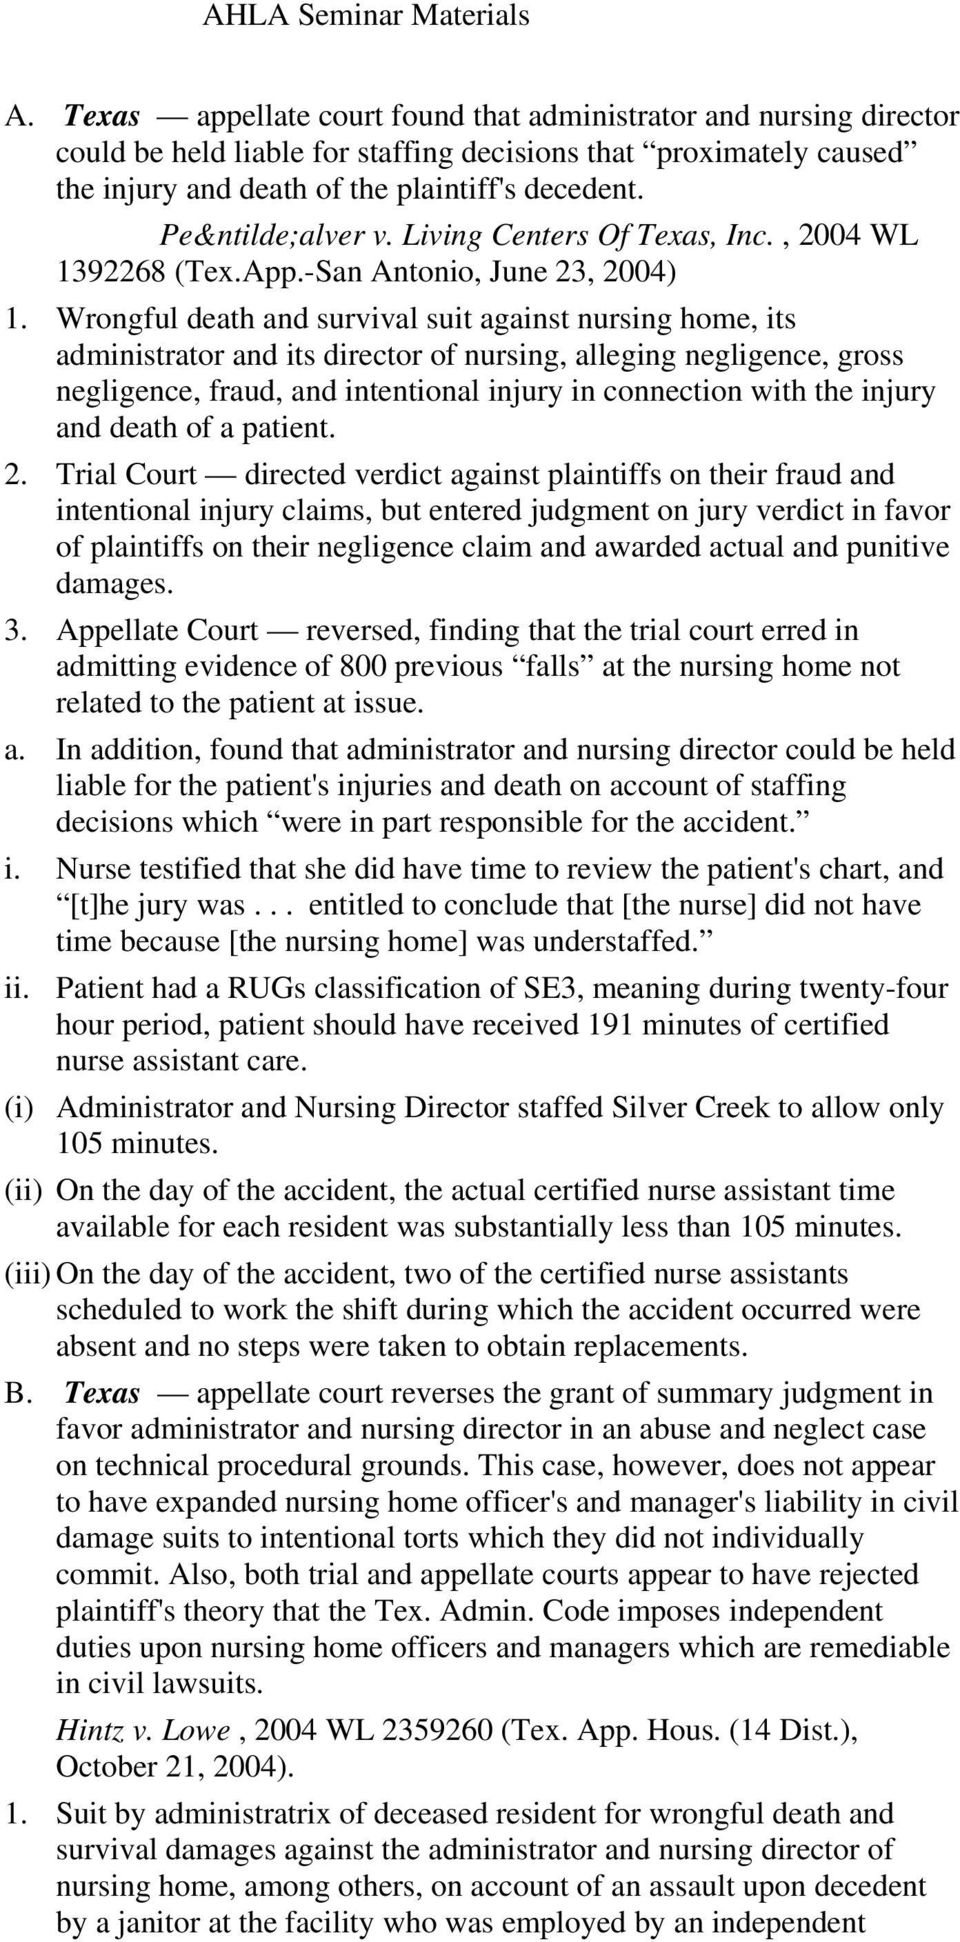 Wrongful death and survival suit against nursing home, its administrator and its director of nursing, alleging negligence, gross negligence, fraud, and intentional injury in connection with the